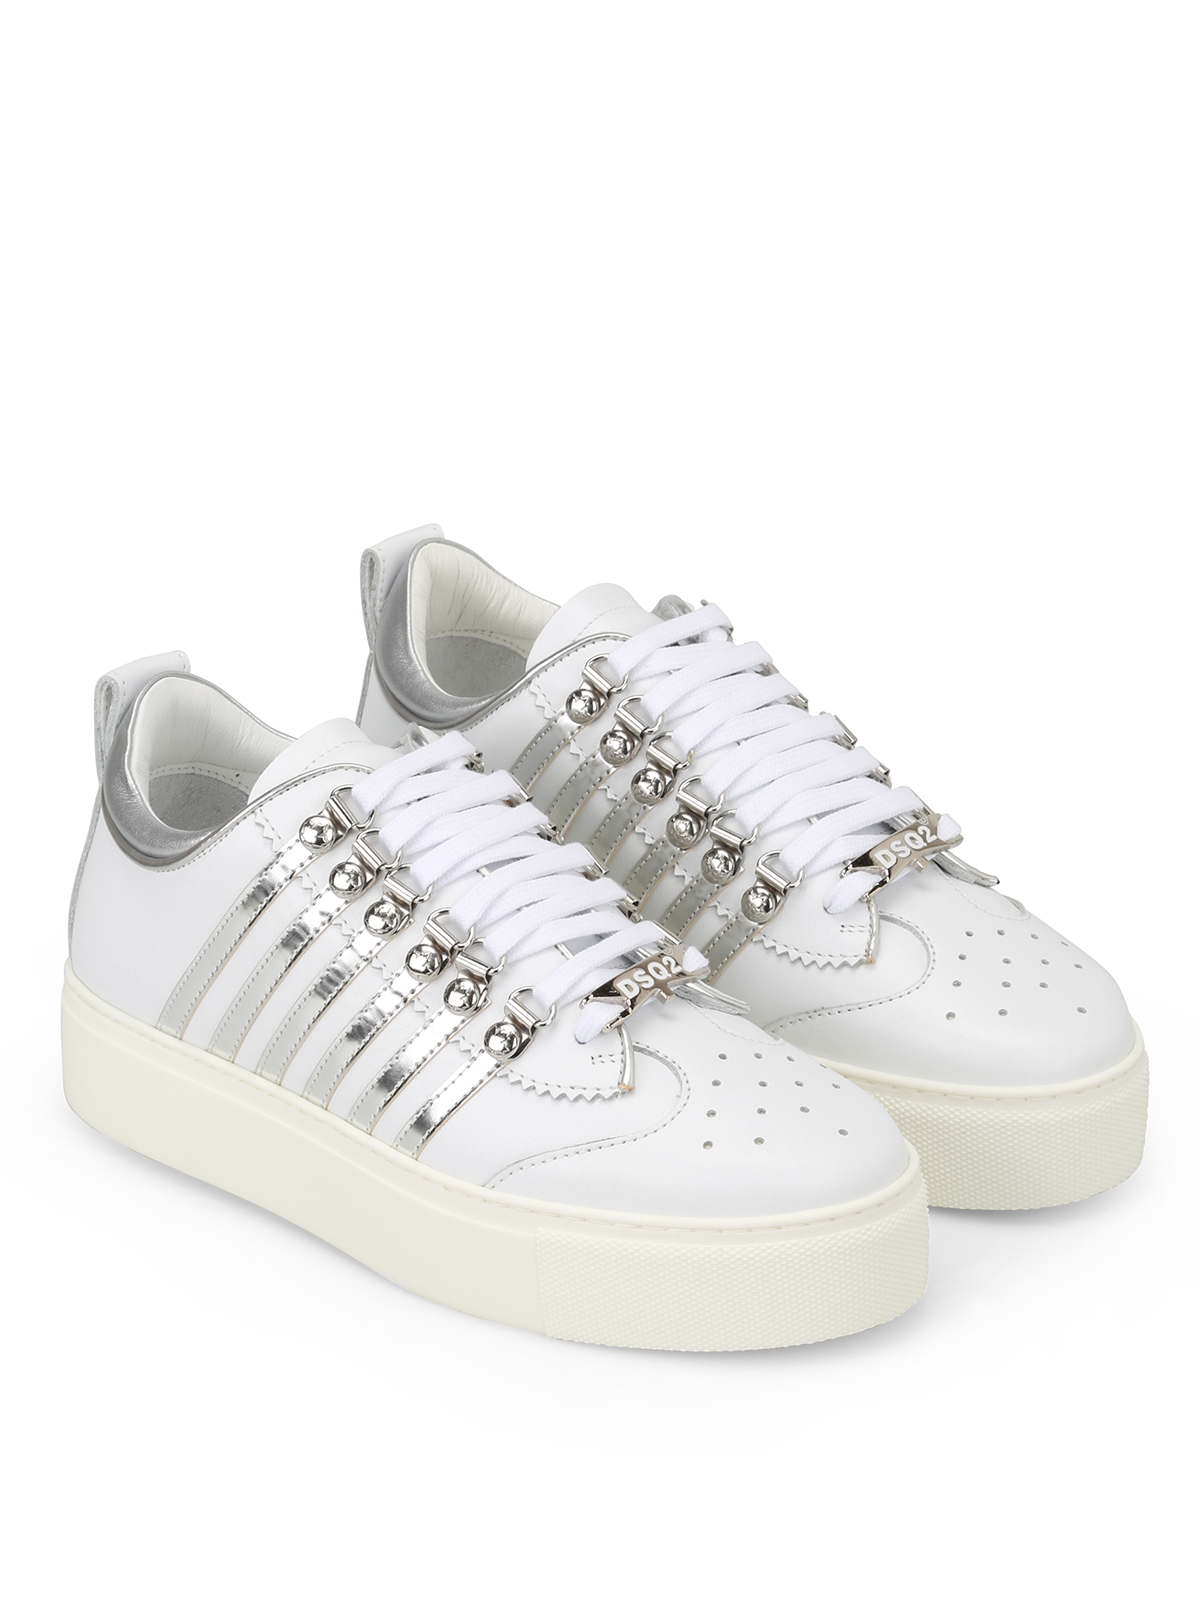 251 white and silver sneakers